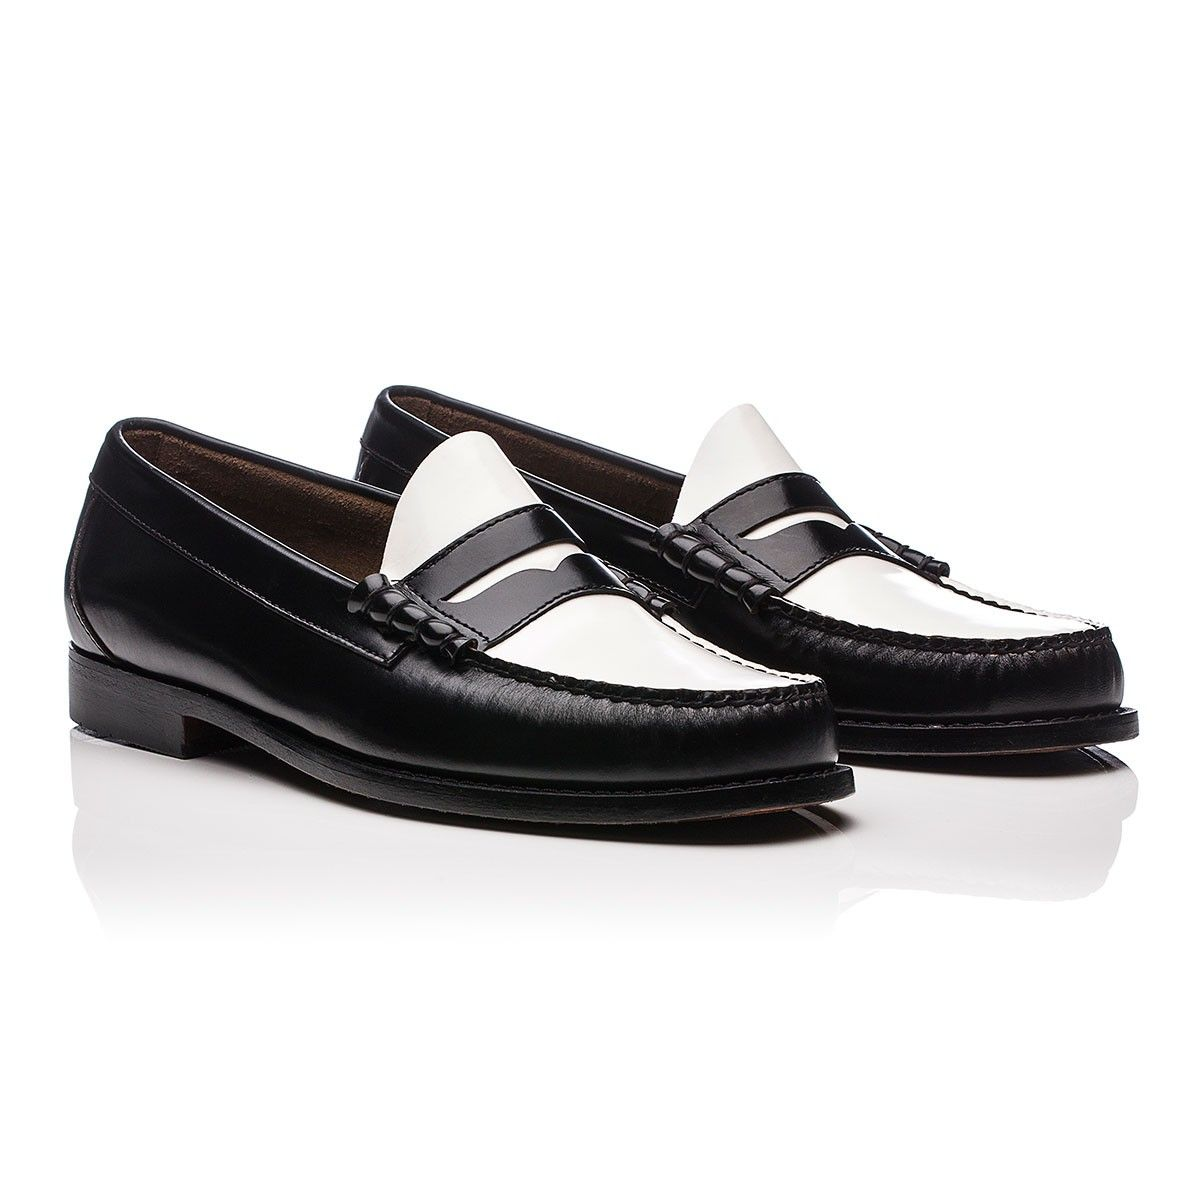 Weejuns Larson Penny Loafers Black & White Leather - Bass Weejuns - Men More